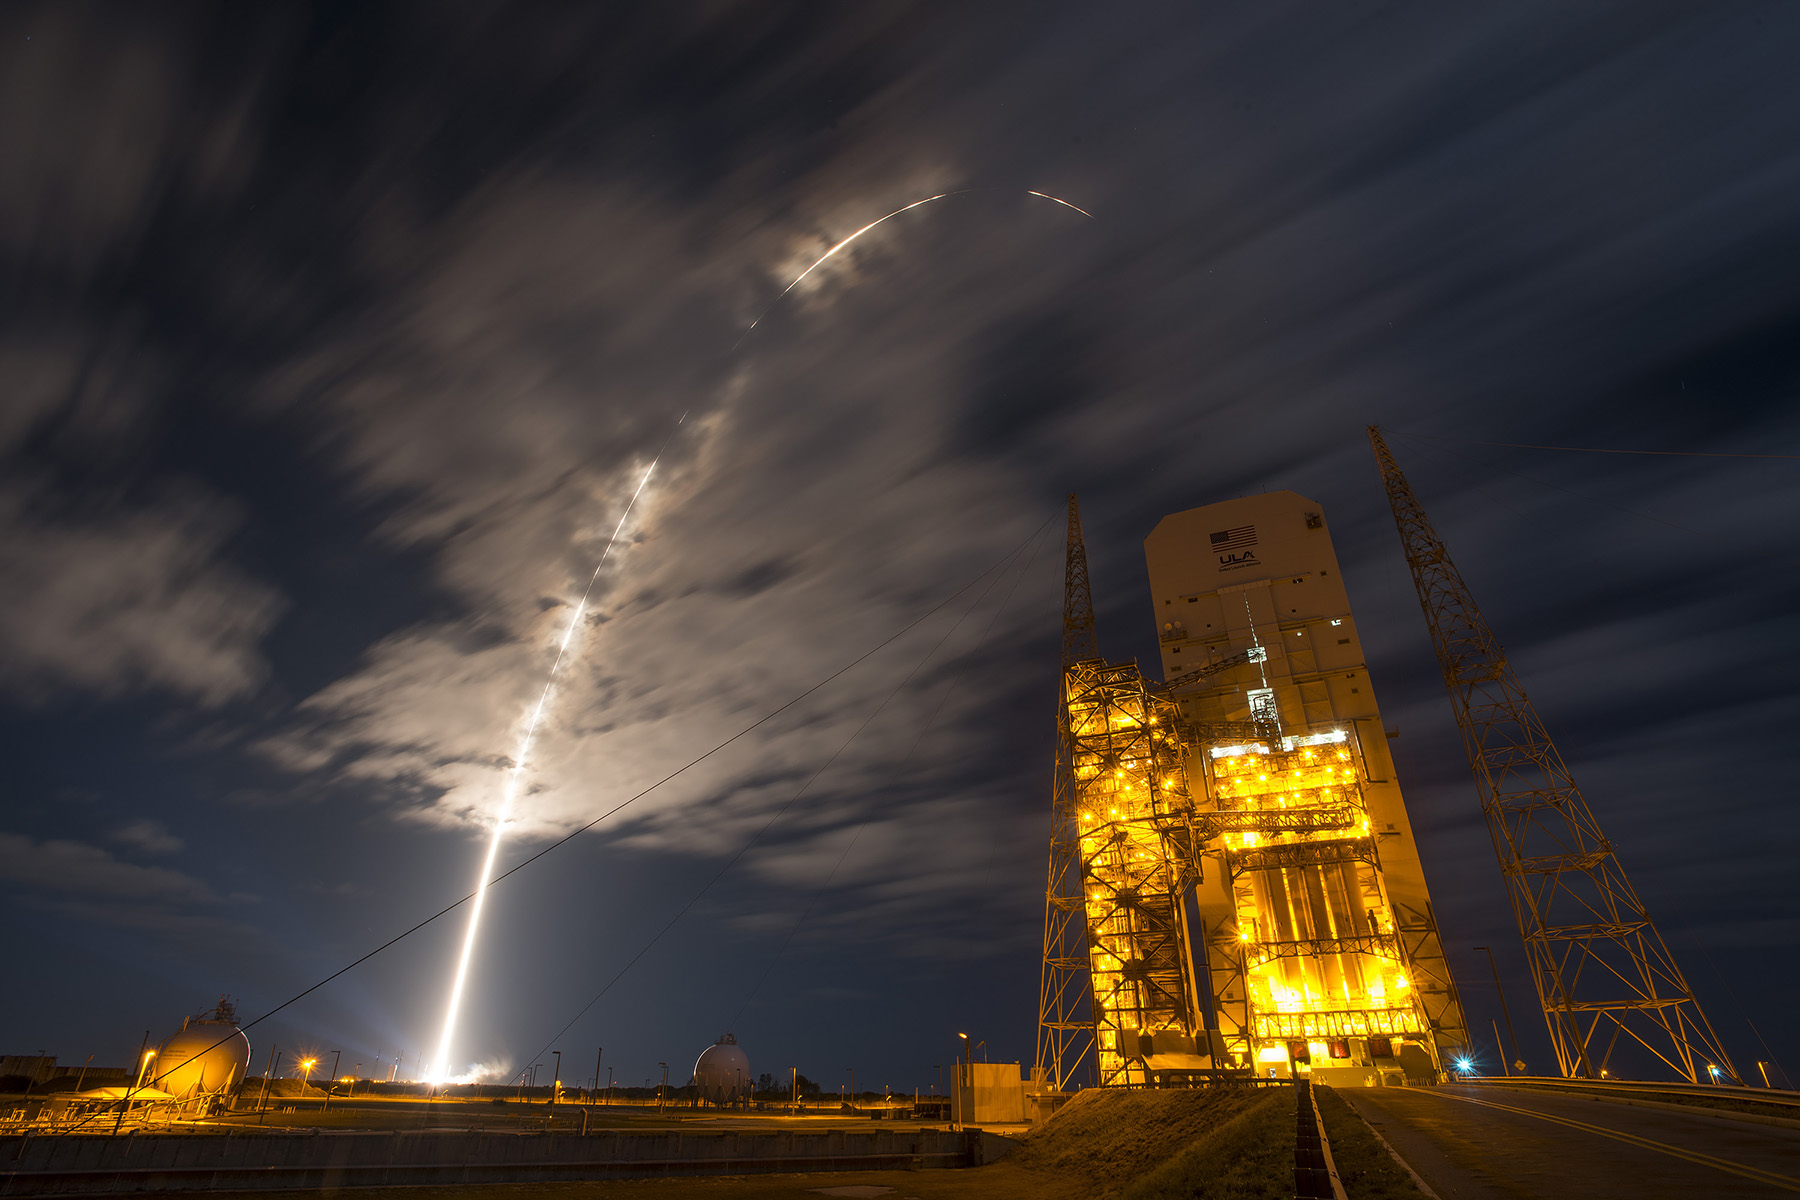 Cygnus OA-6 Cargo Launch, March 22, 2016